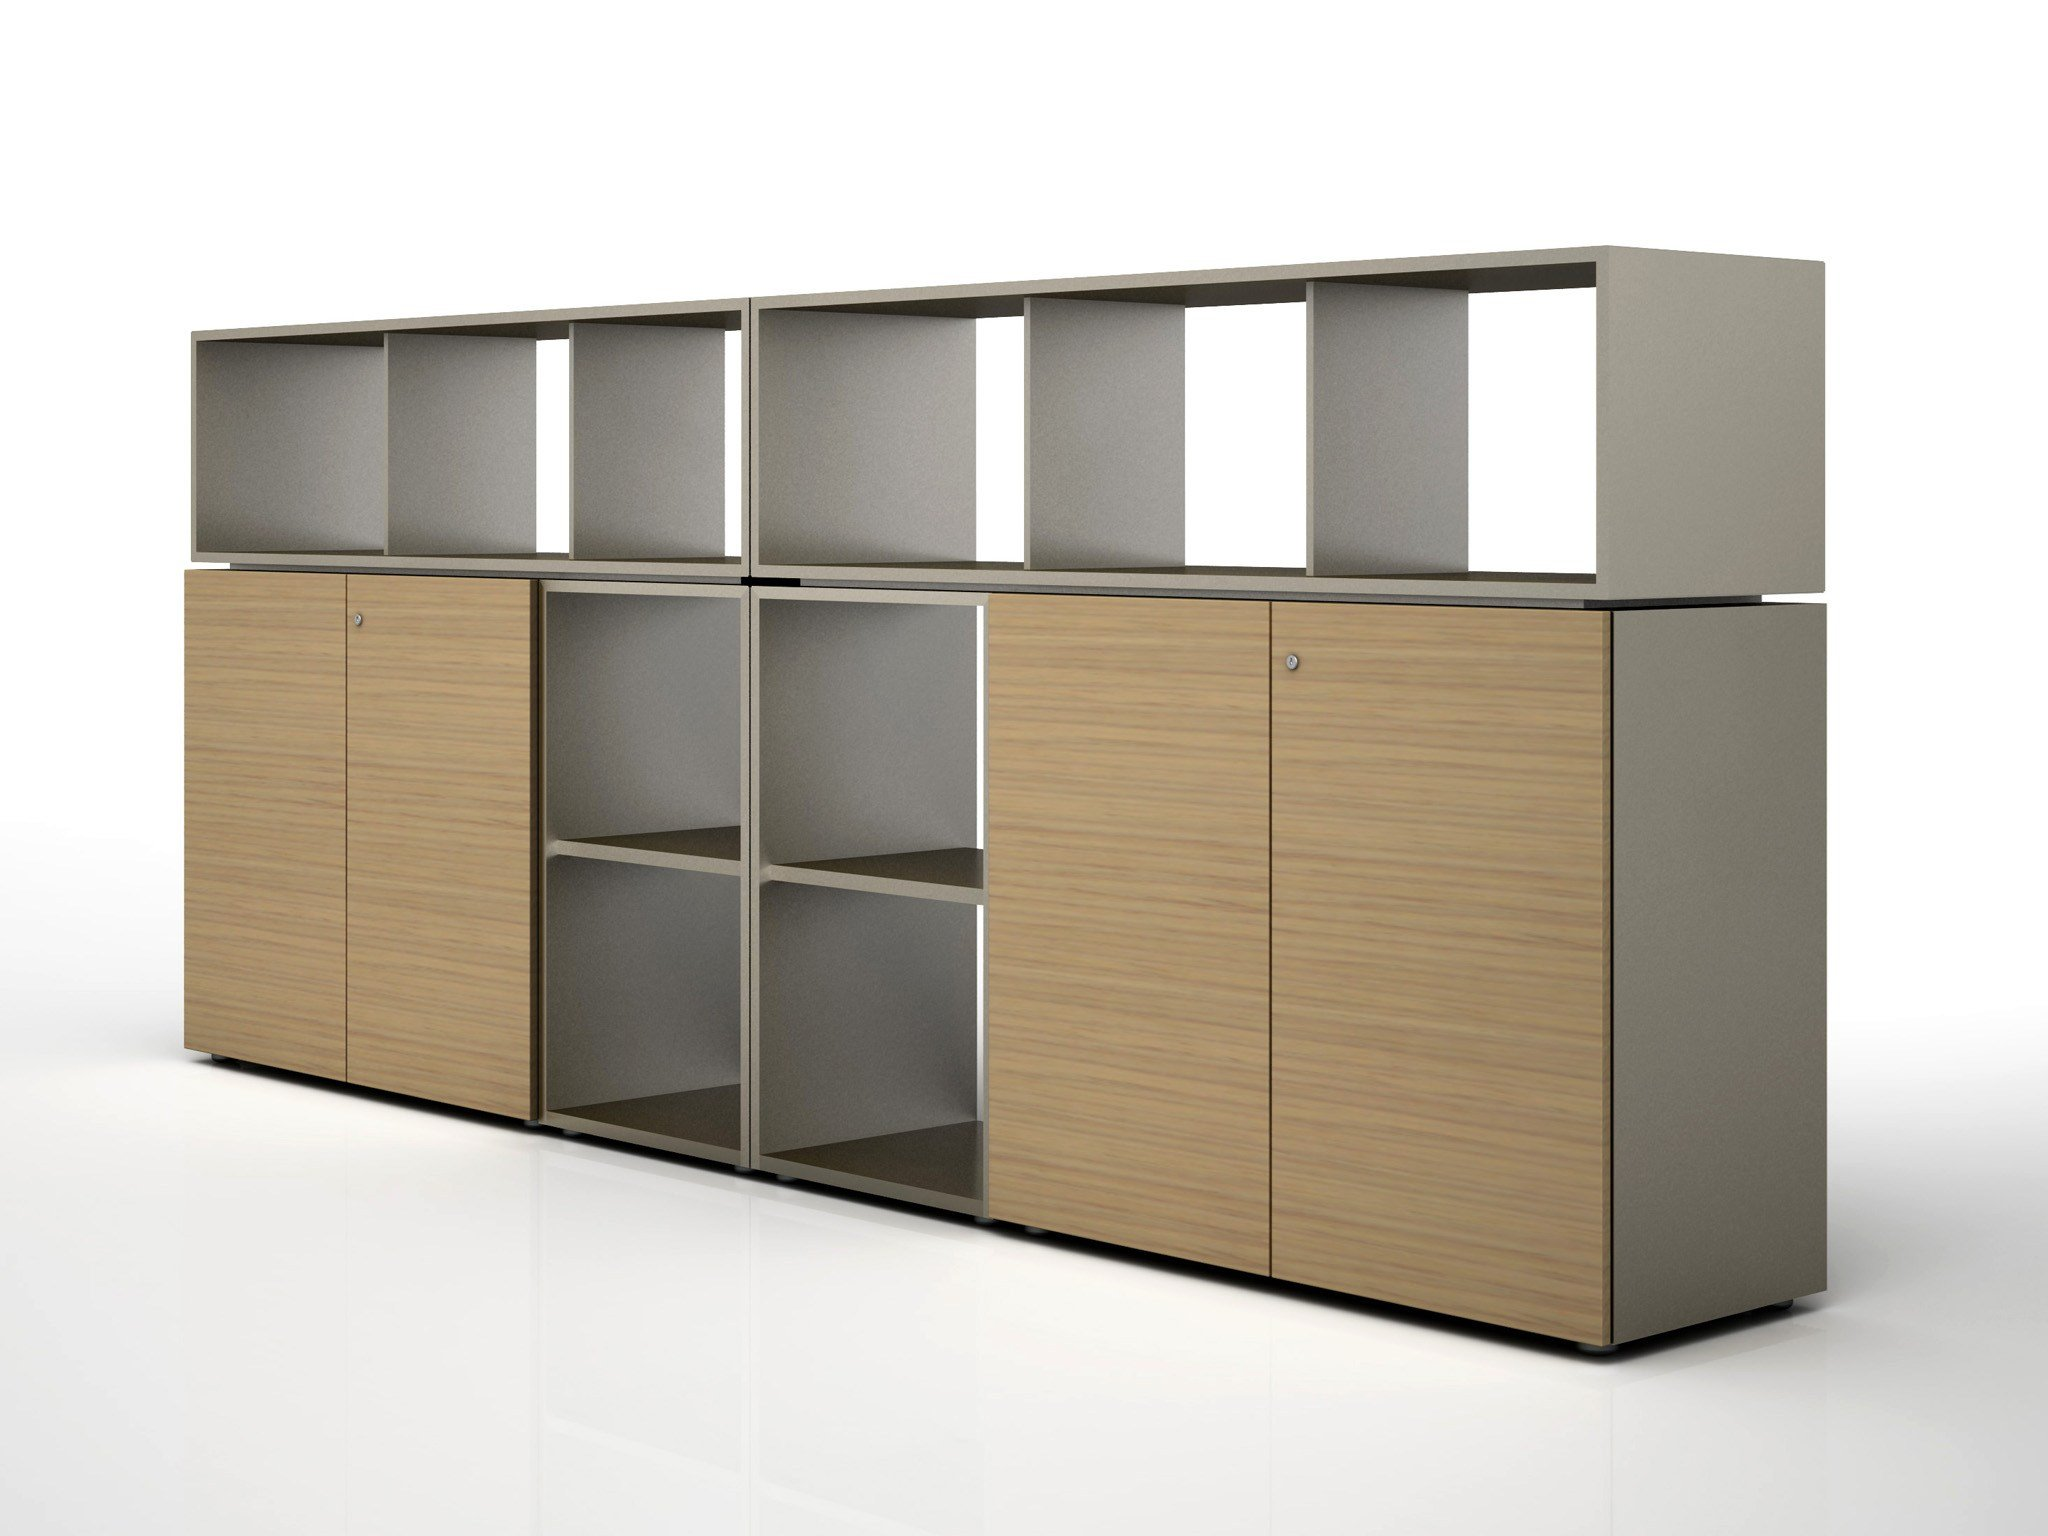 modular wooden office storage unit case by estel group